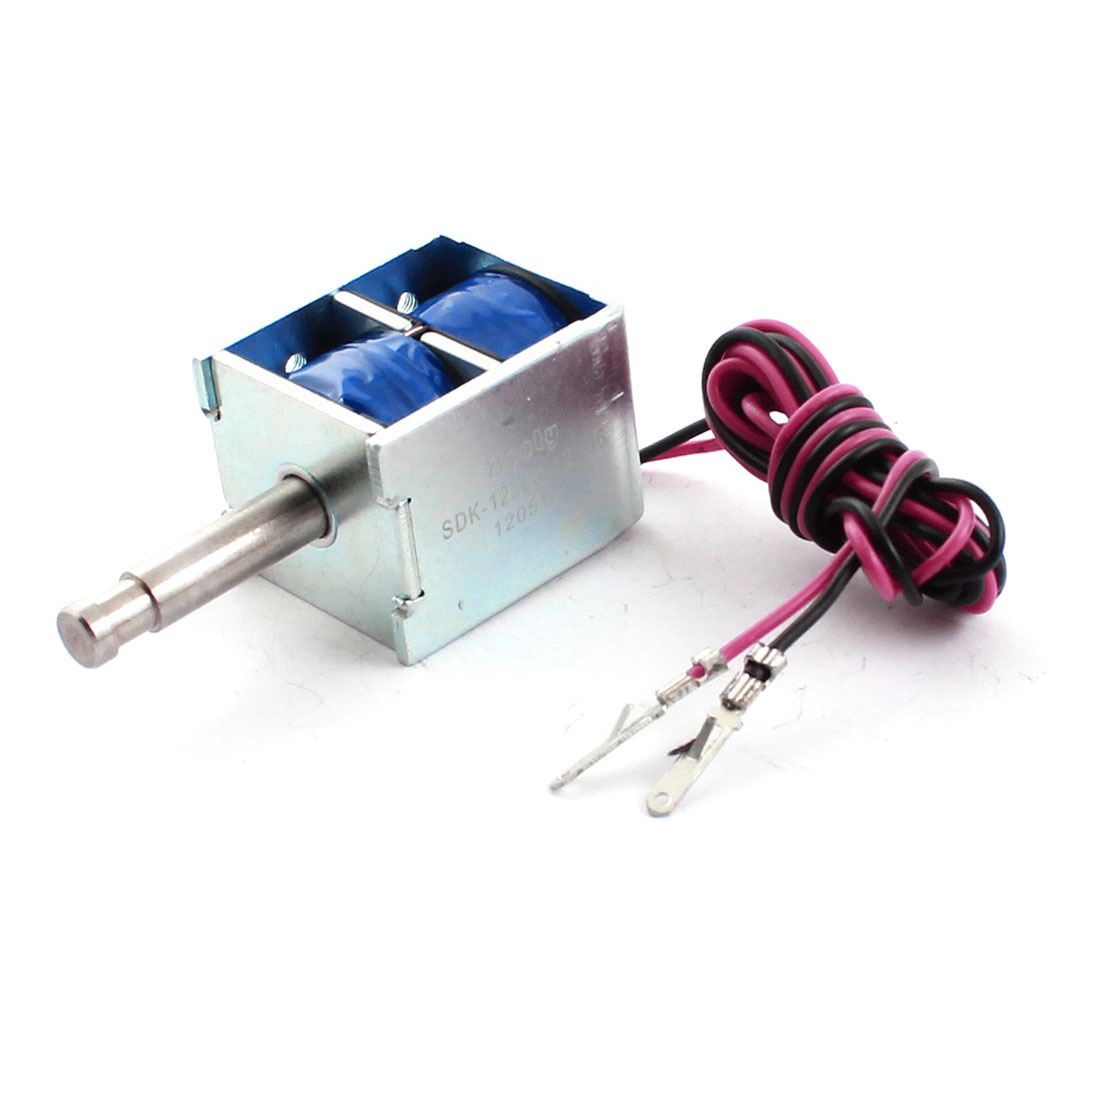 12V 2A 24W 10mm 1000g 100% Pull Type Open Frame DC Solenoid Electromagnet Actuator